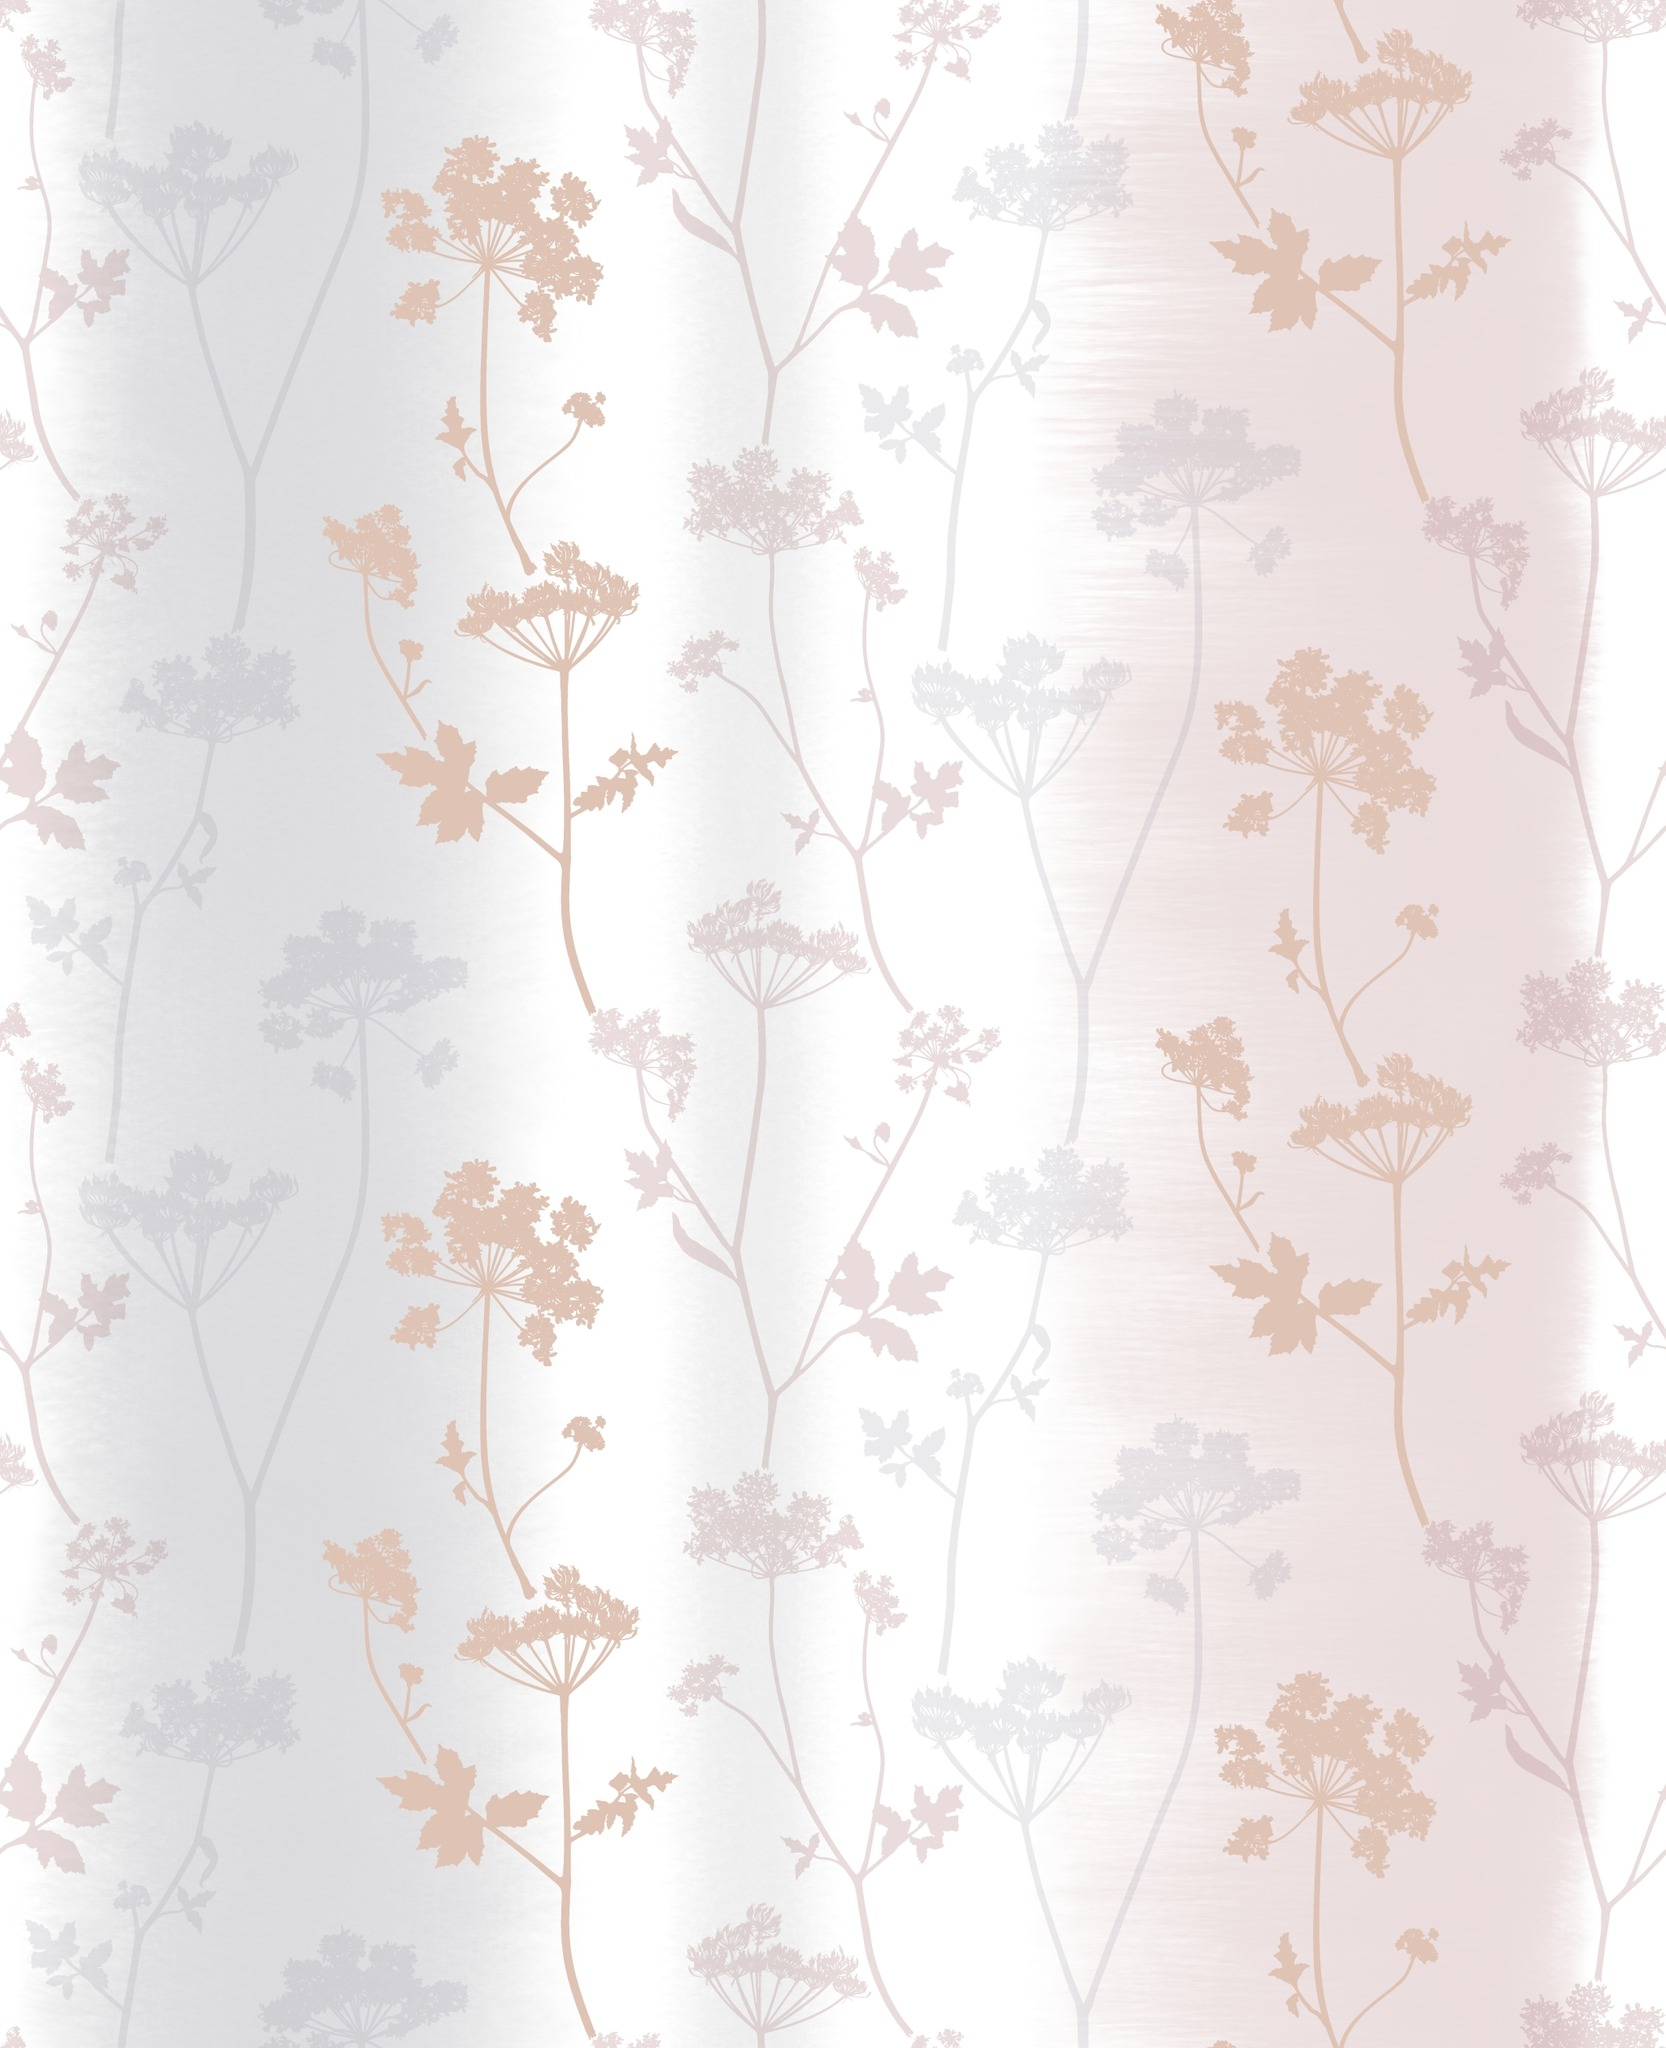 Summertime Rose Gold Floral Wallpaper 106408 Wallpaper Sales